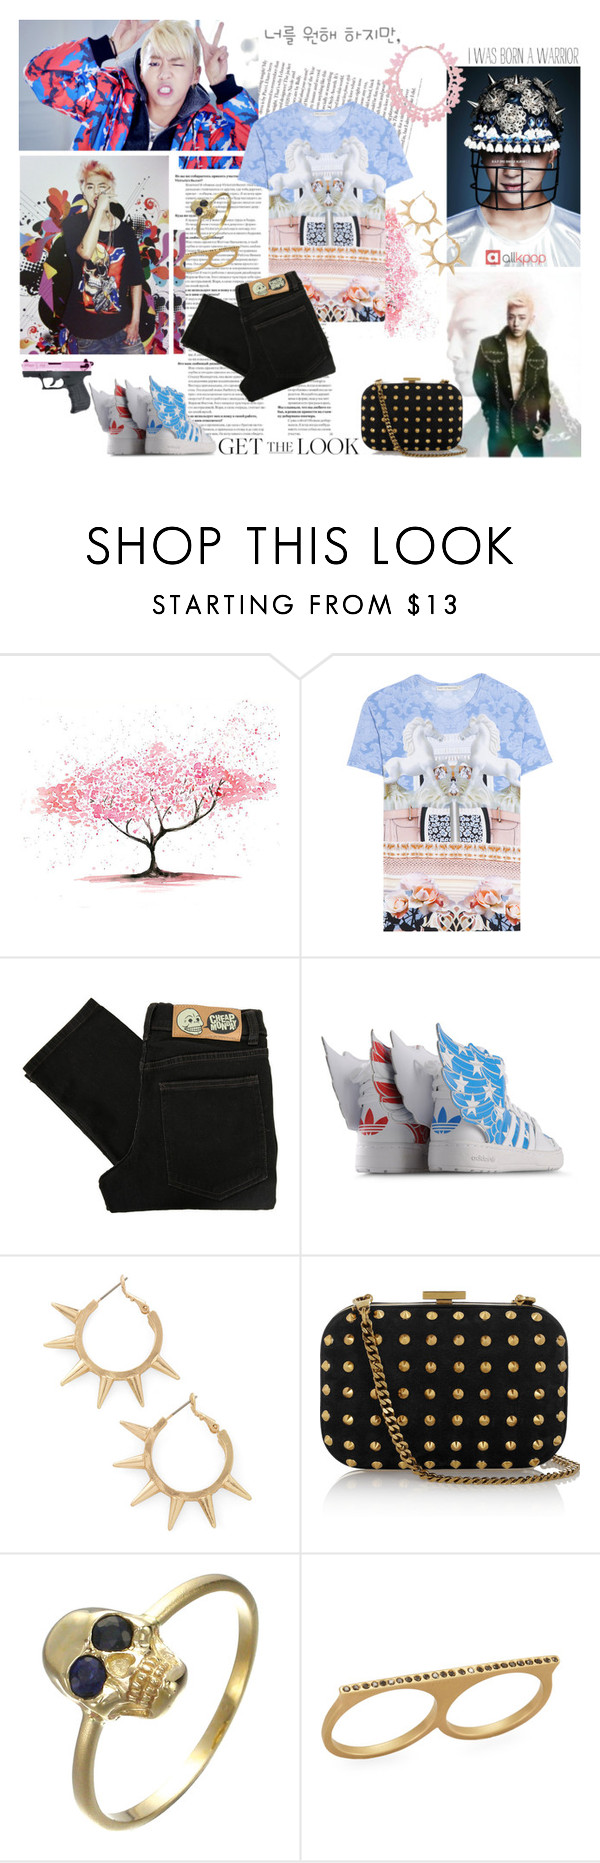 """""""Bang Yong Guk."""" by fruitmachine ❤ liked on Polyvore featuring Mary Katrantzou, Cheap Monday, adidas, Ek Thongprasert, Gucci, Social Anarchy, skinny jeans, colored jeans, high top sneakers and all over print shirts"""